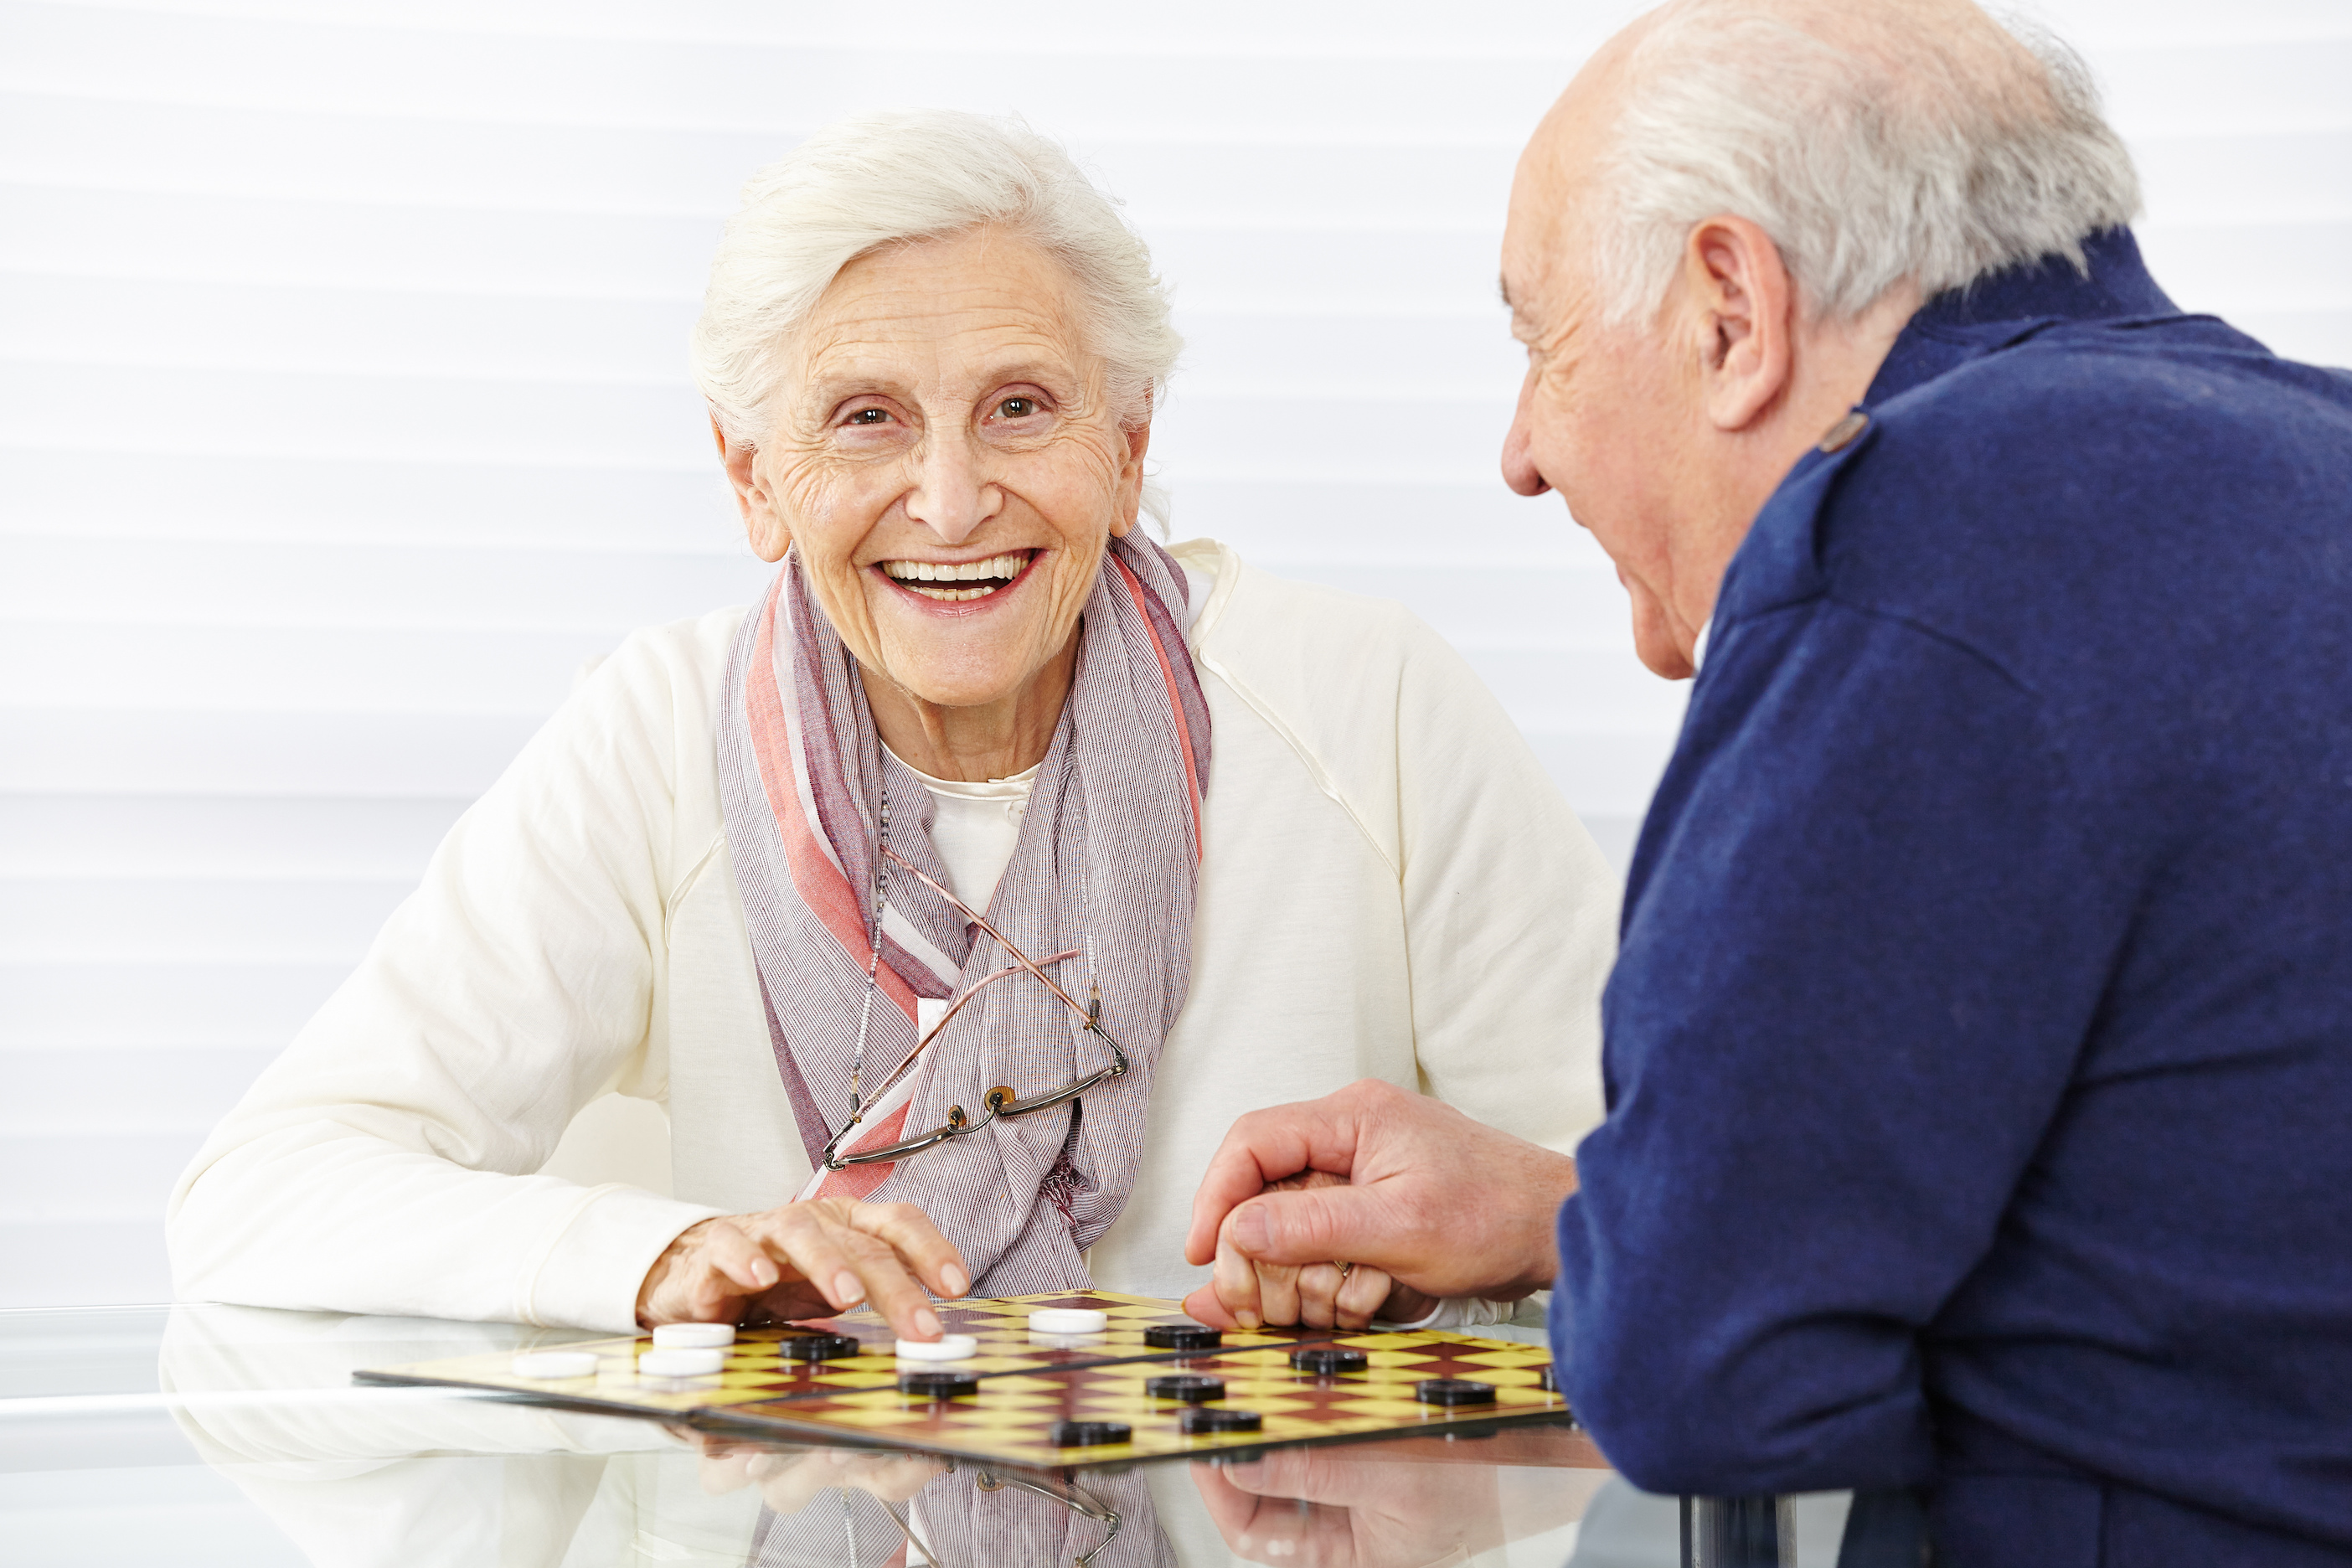 Having a positive attitude about old age could significantly reduce a person's risk of getting dementia, according to new research.